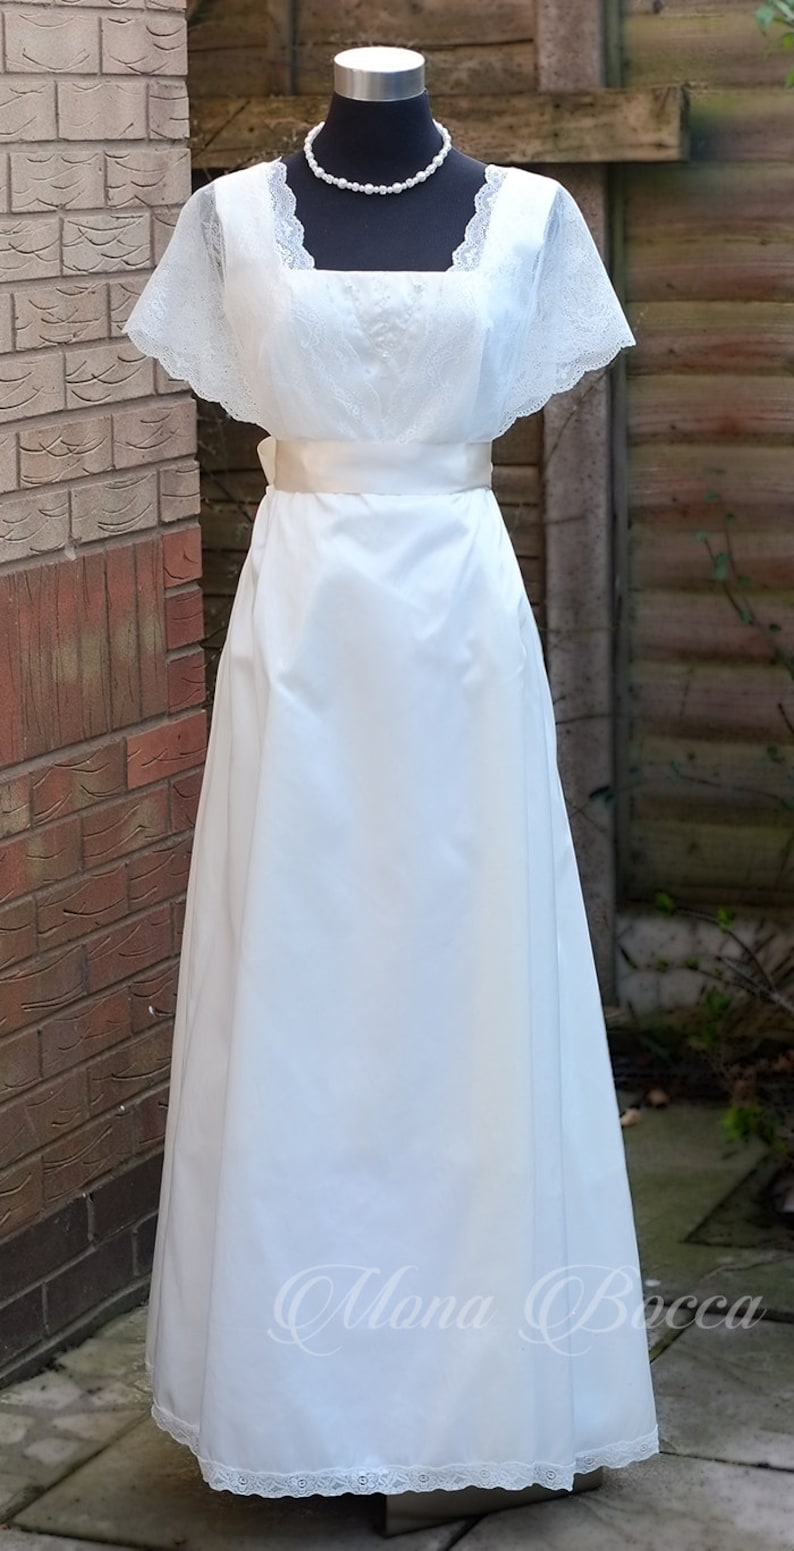 Victorian Wedding Dresses, Shoes, Accessories Ivory Edwardian styled wedding dress ivory debutante gown handmade in England Titanic vintage styled Made to order $254.00 AT vintagedancer.com